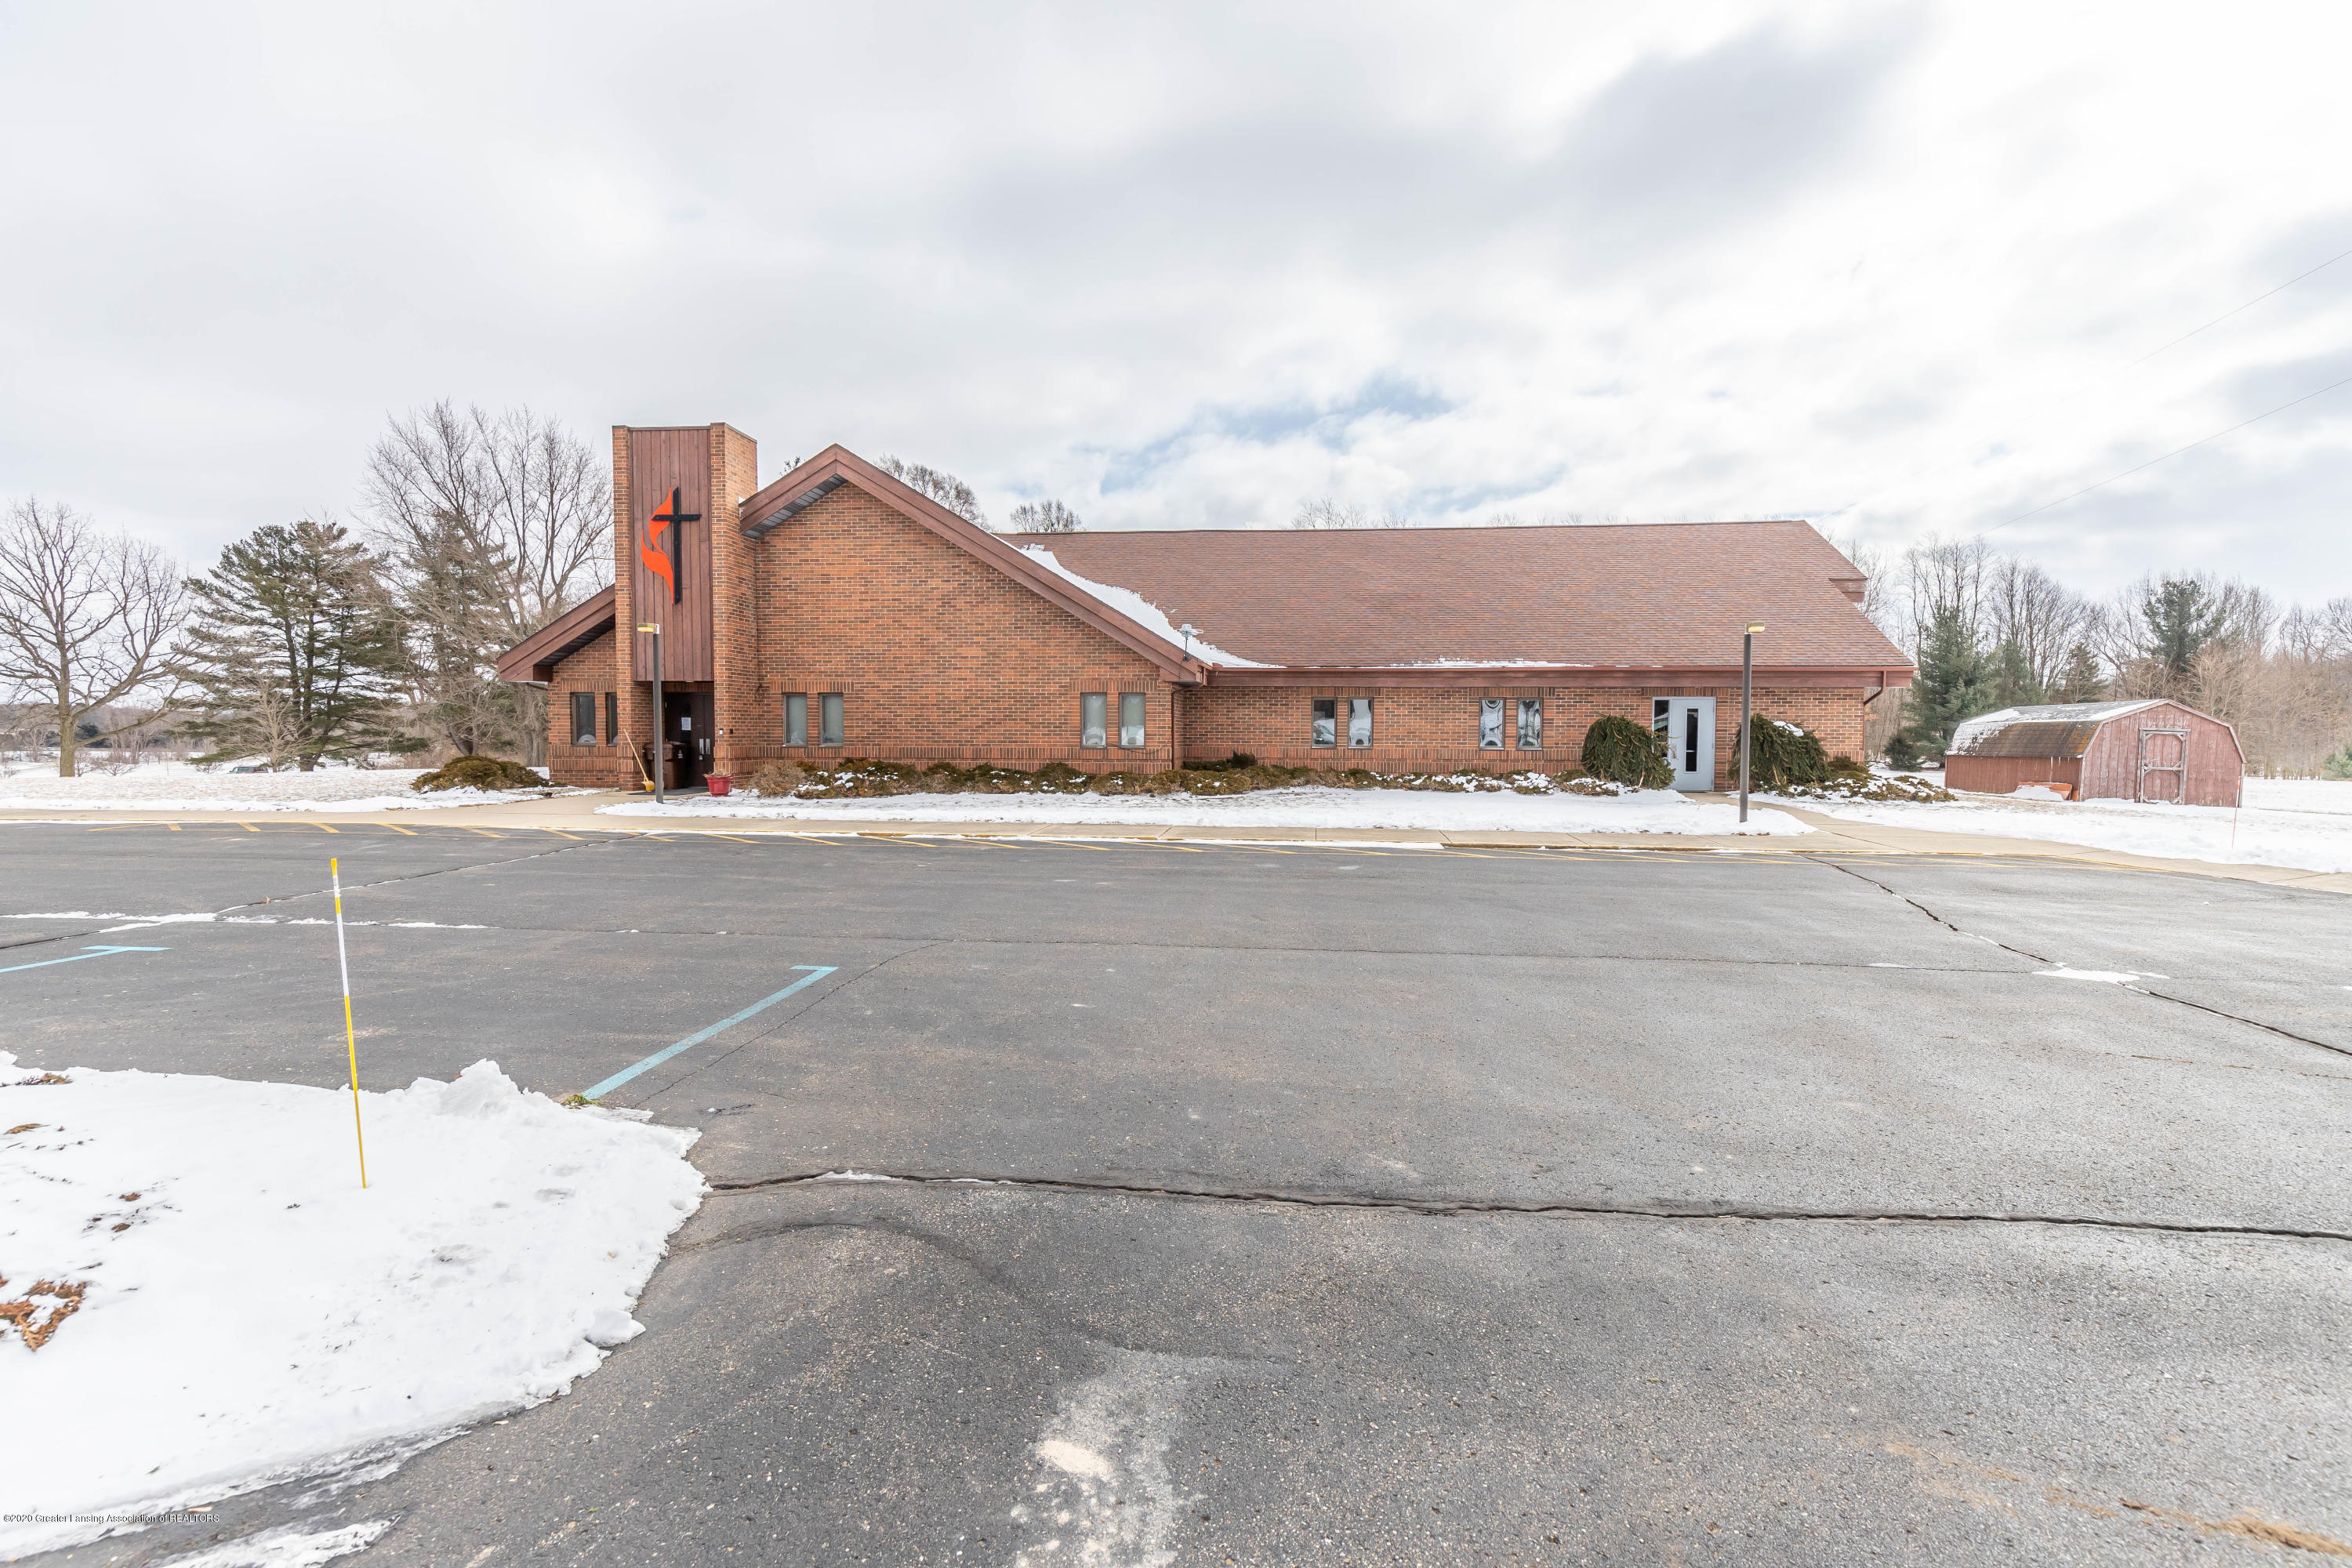 2307 W Maple Rapids Rd - stjohnschurch1 - 3